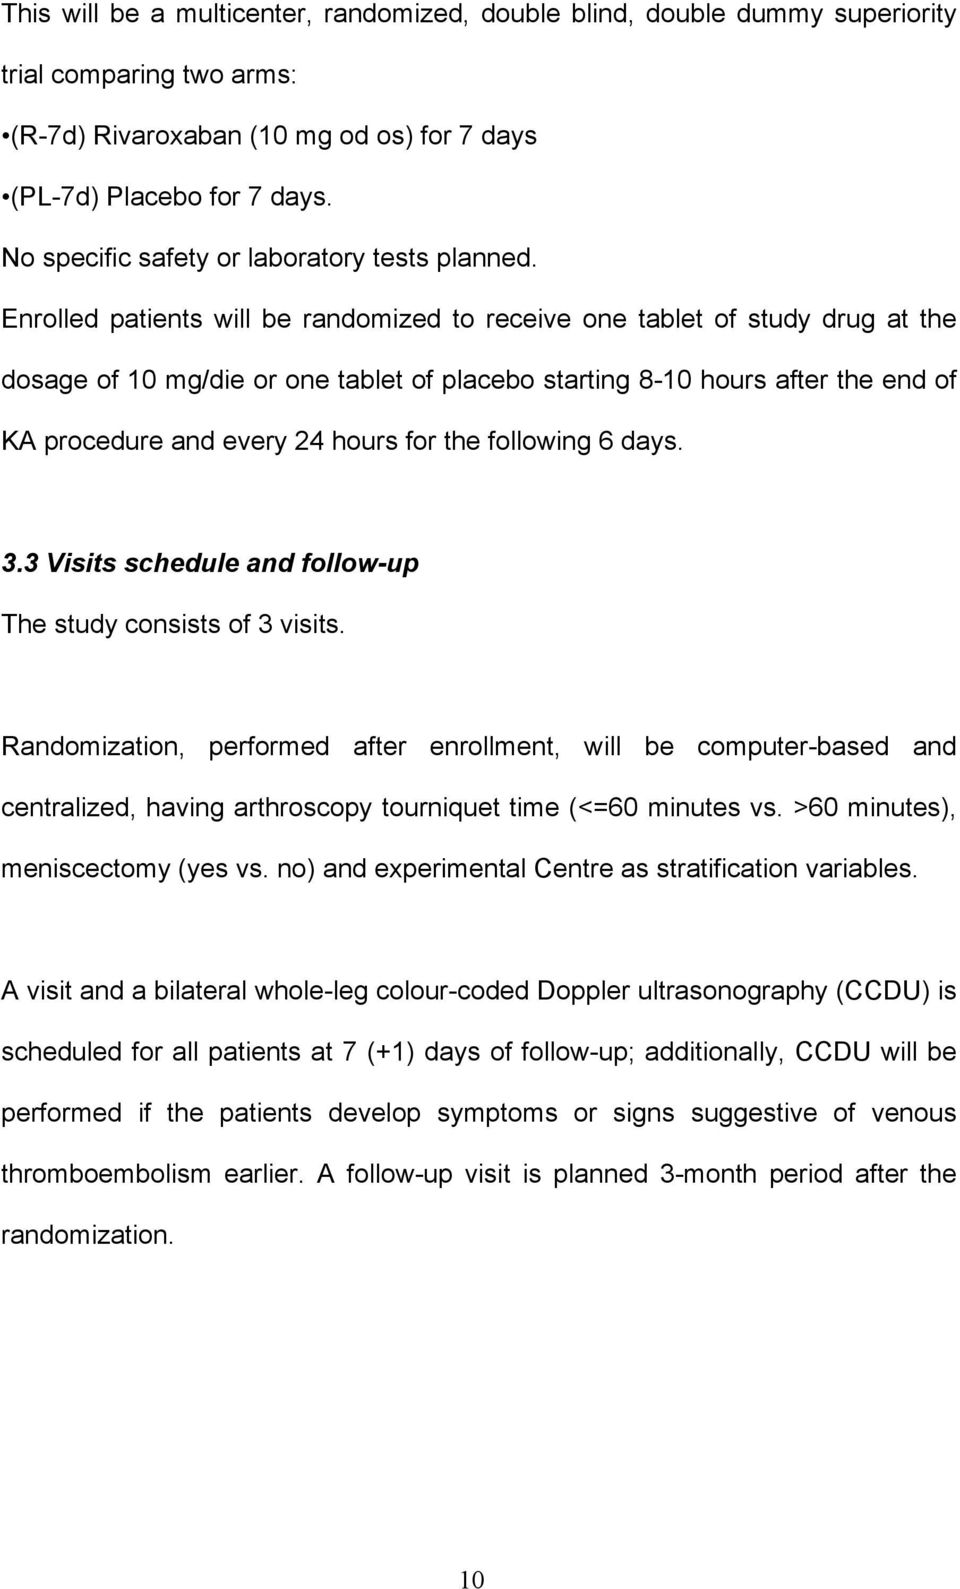 Enrolled patients will be randomized to receive one tablet of study drug at the dosage of 10 mg/die or one tablet of placebo starting 8-10 hours after the end of KA procedure and every 24 hours for